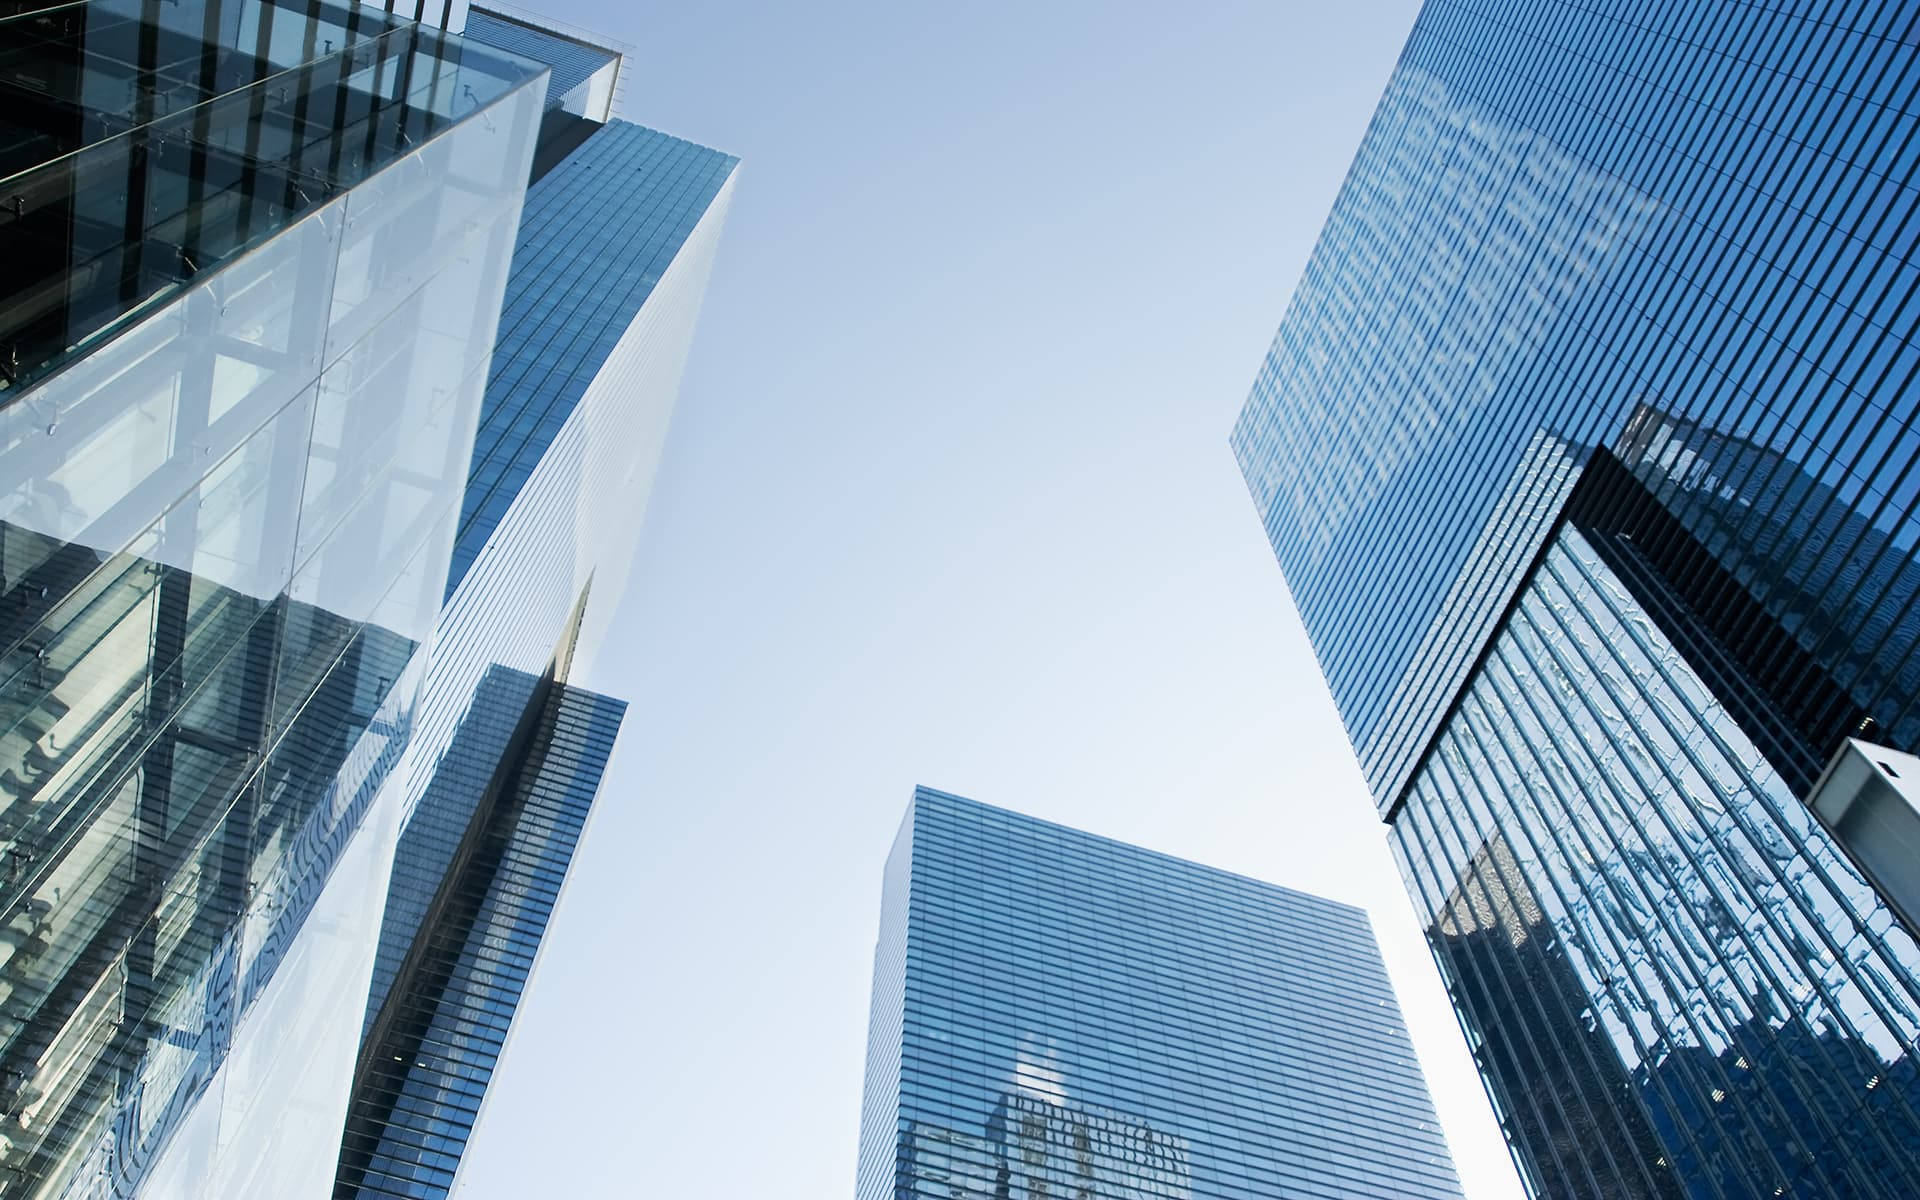 Enterprise Architecture Management and BPM - Architecture of huge Skyscrapers